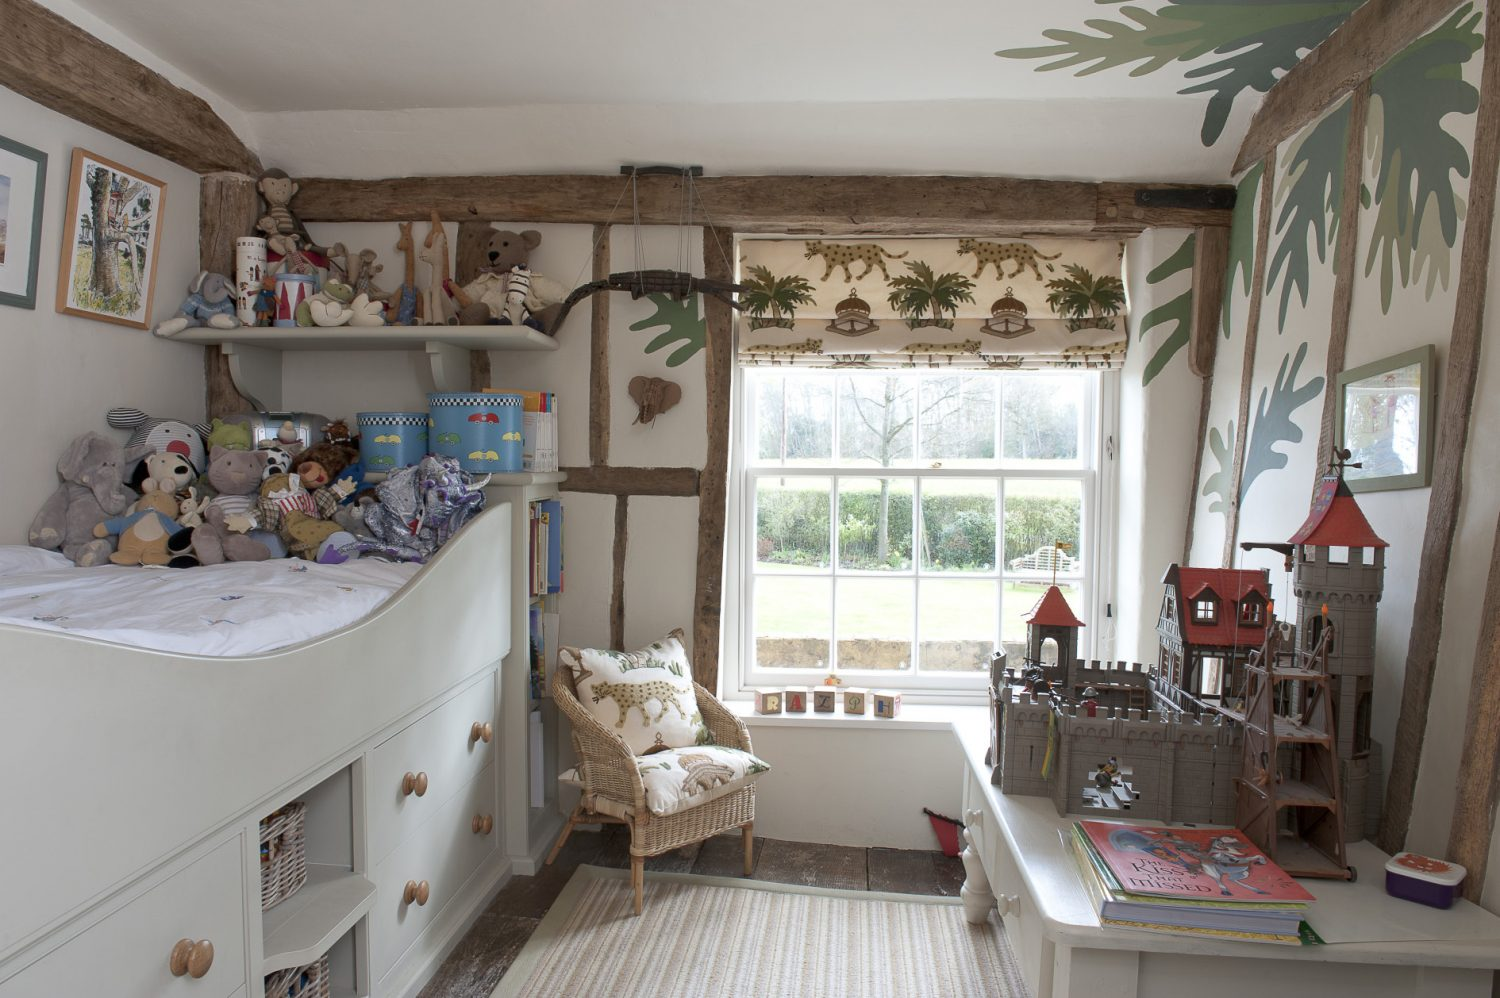 Ralph's room is home to a cabin bed made for him by the team at Bespoke.